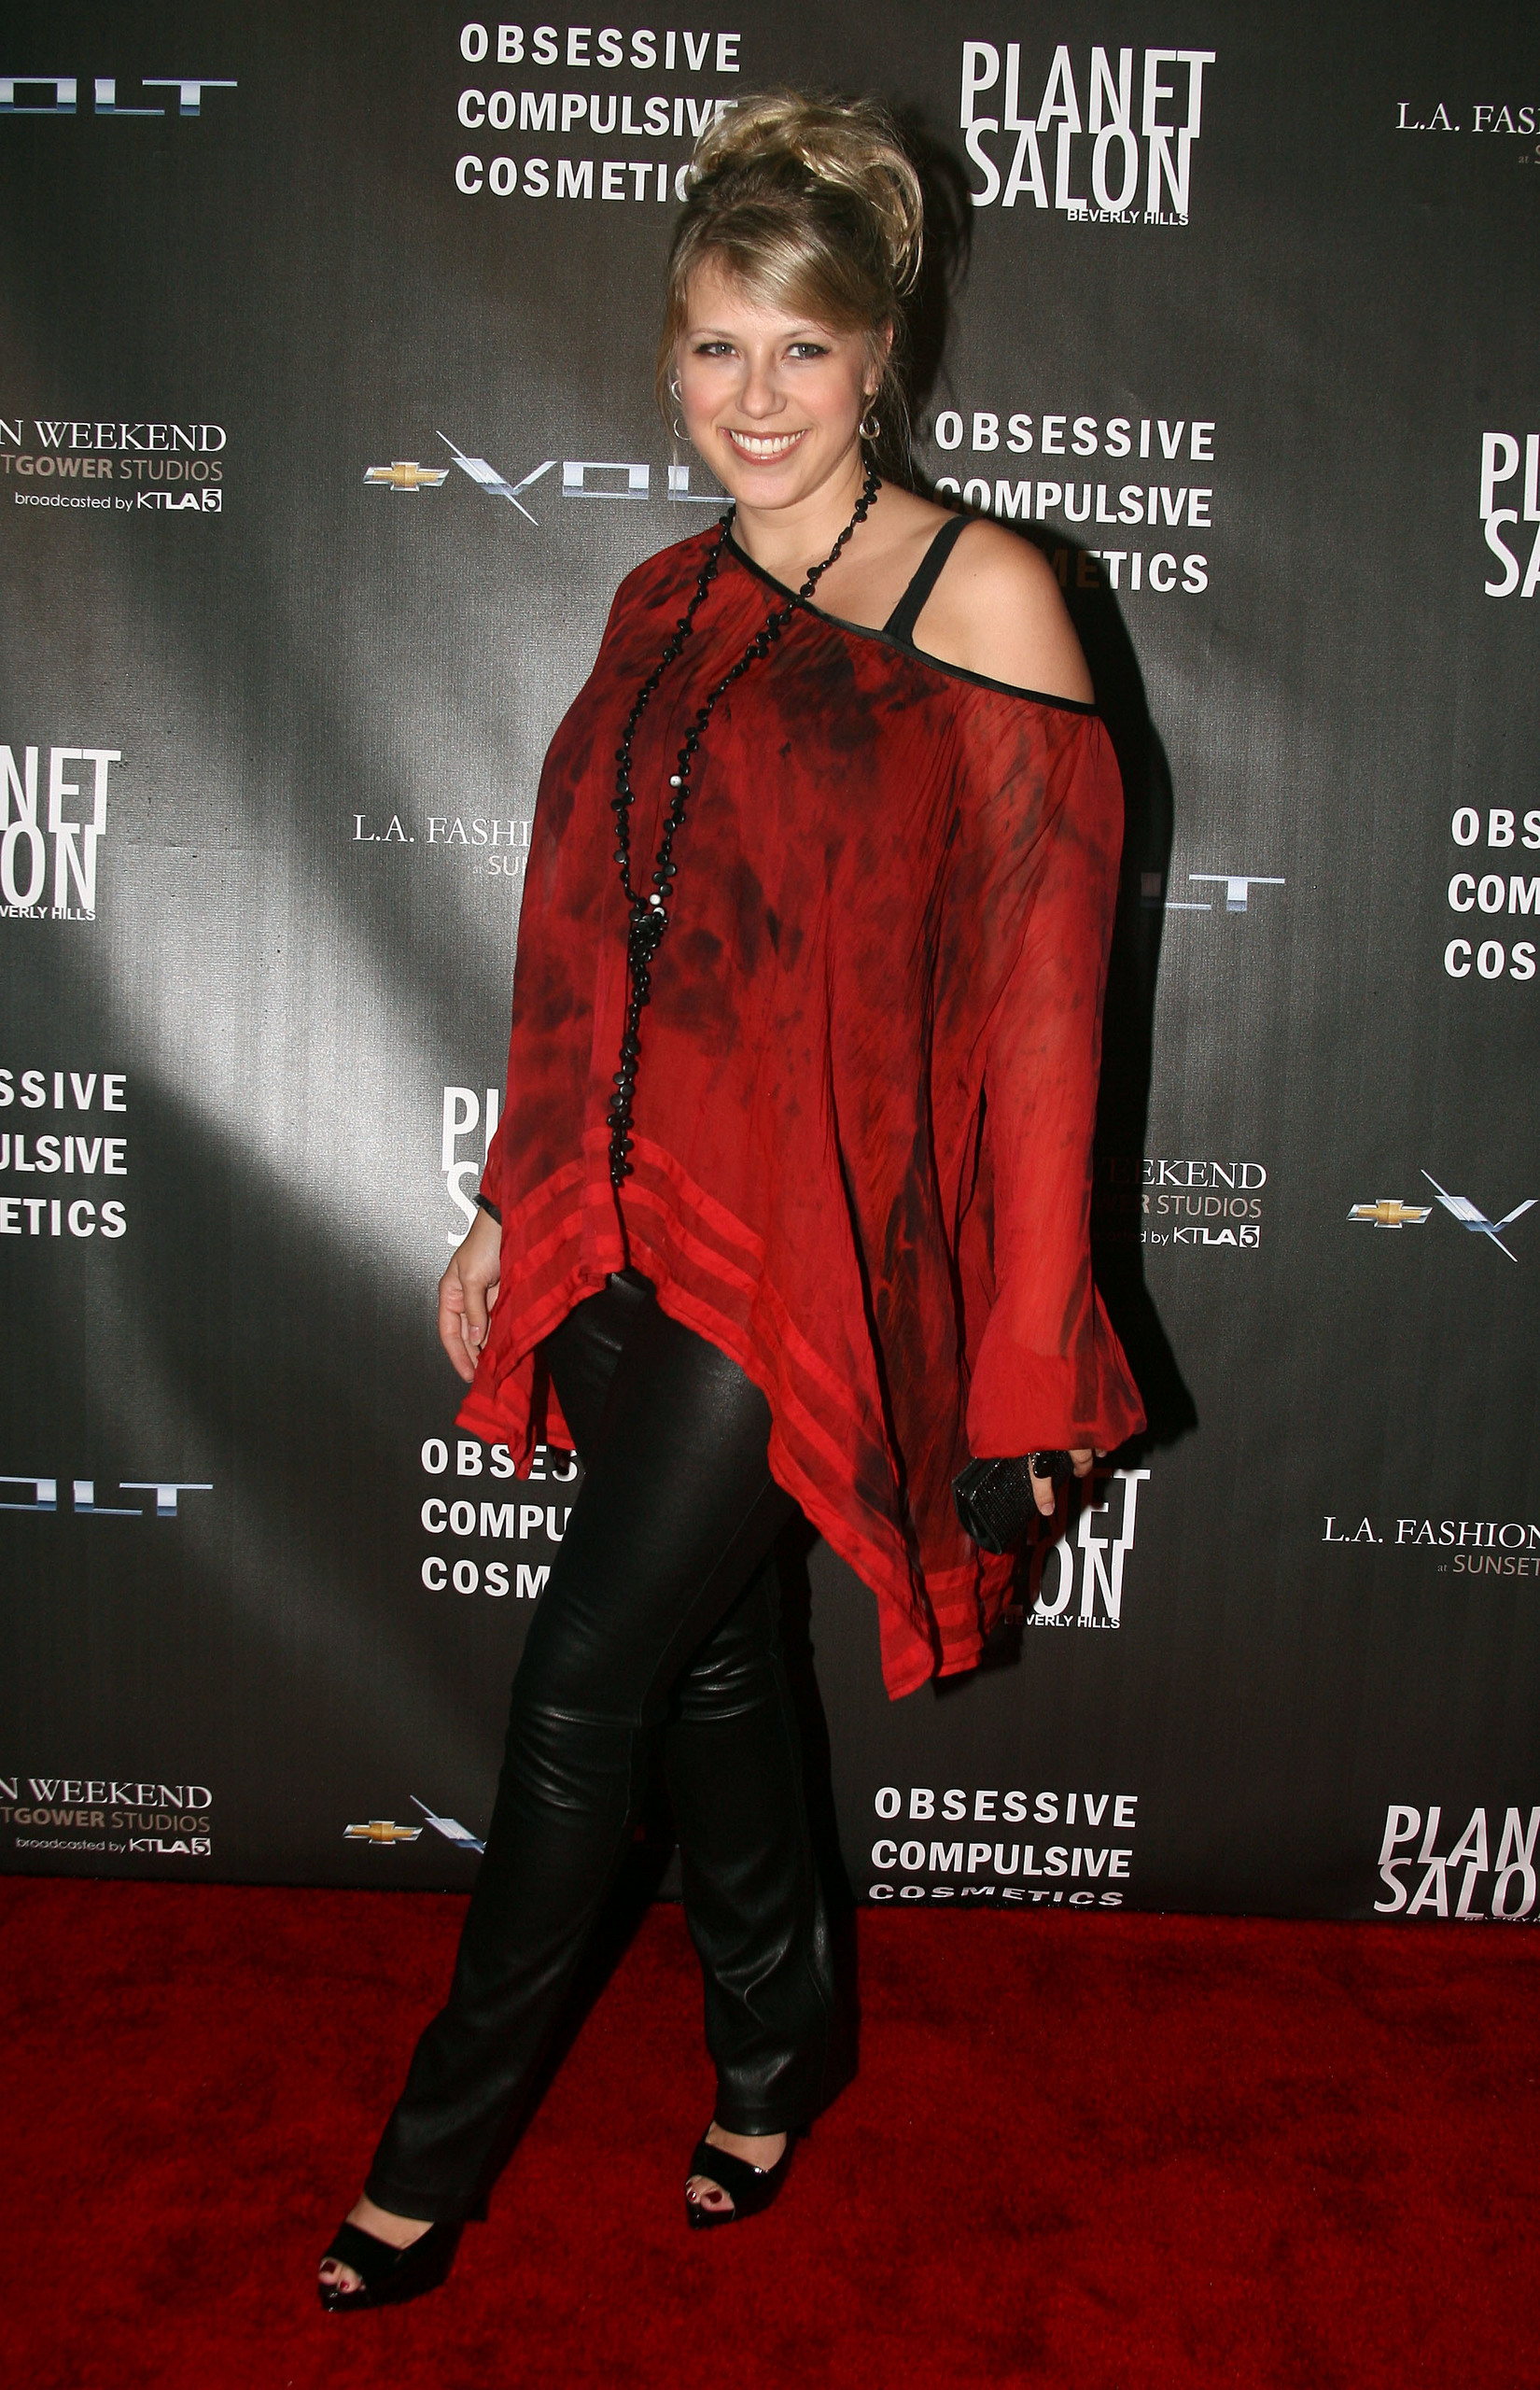 La Fashion Week Jodie Sweetin Photo 25634540 Fanpop